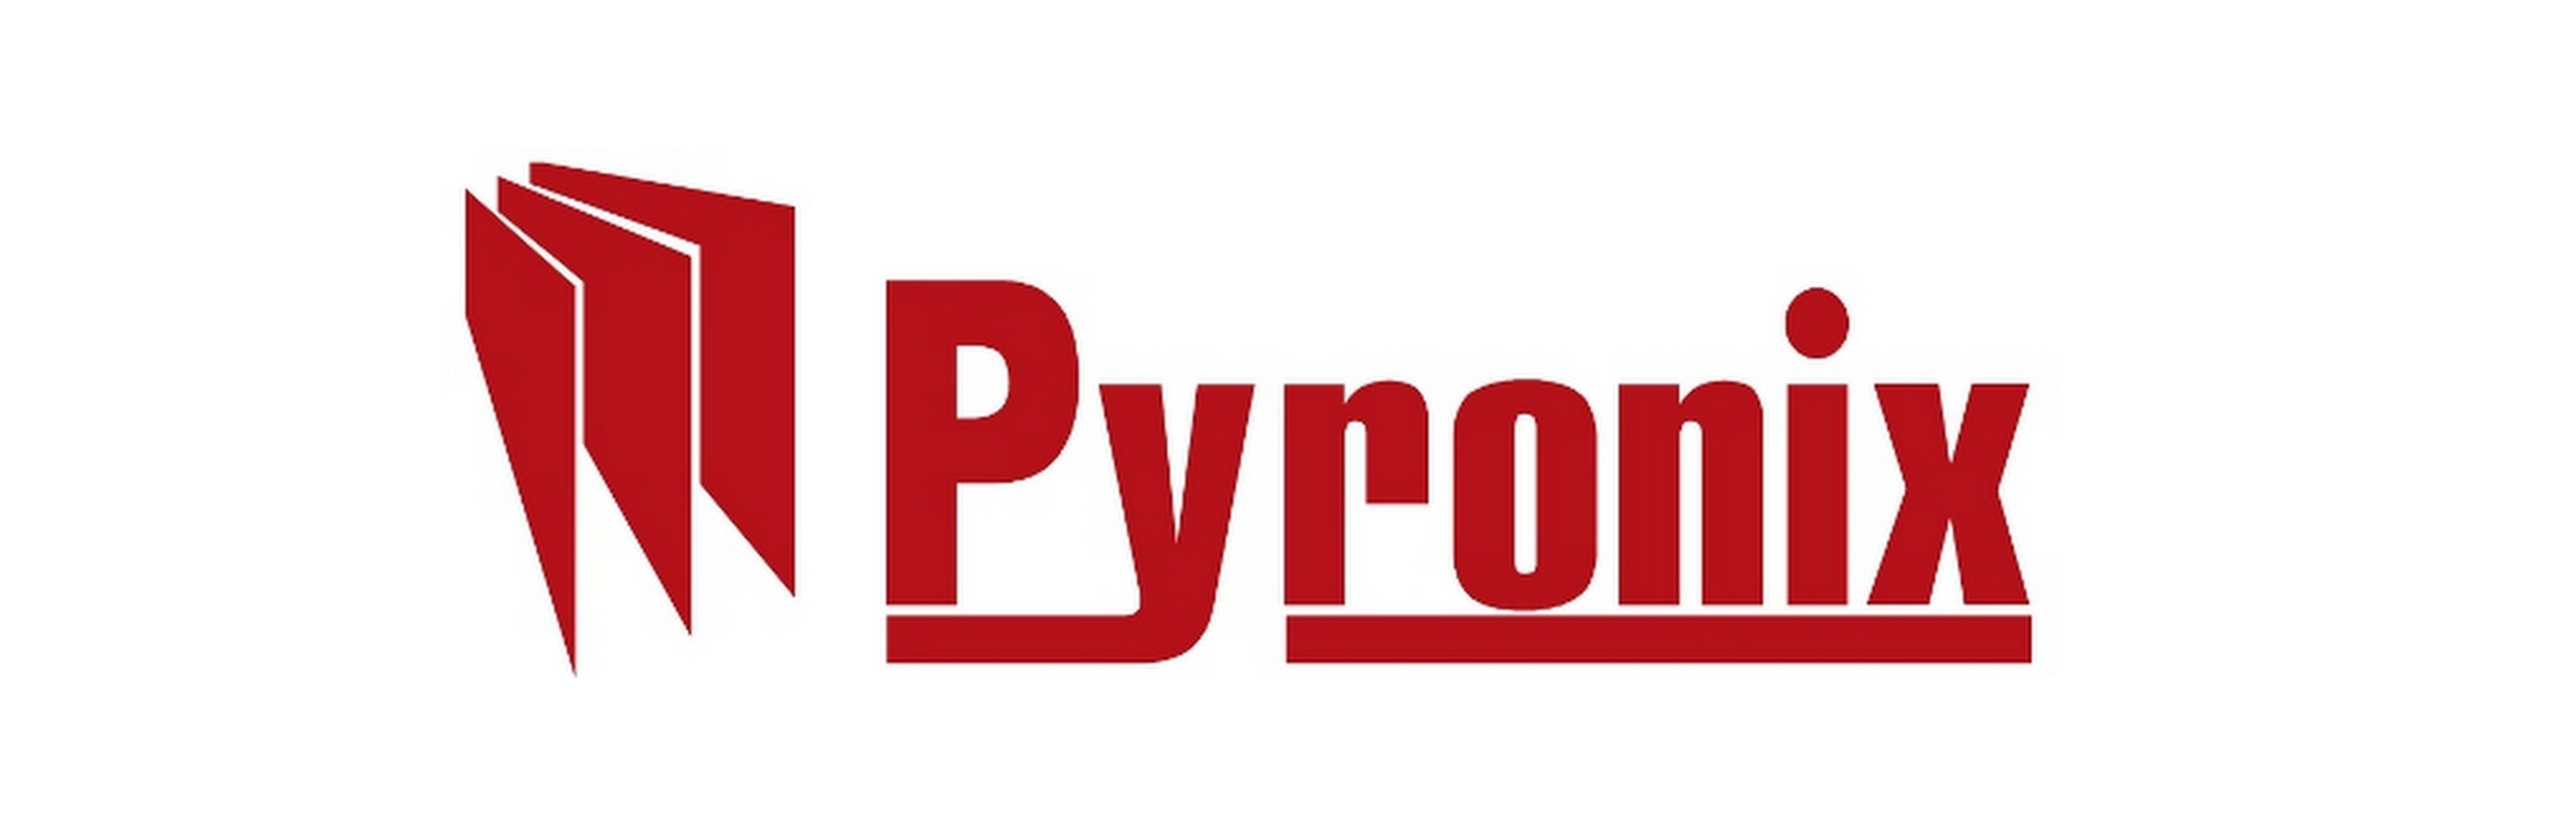 Pyronix Corporation